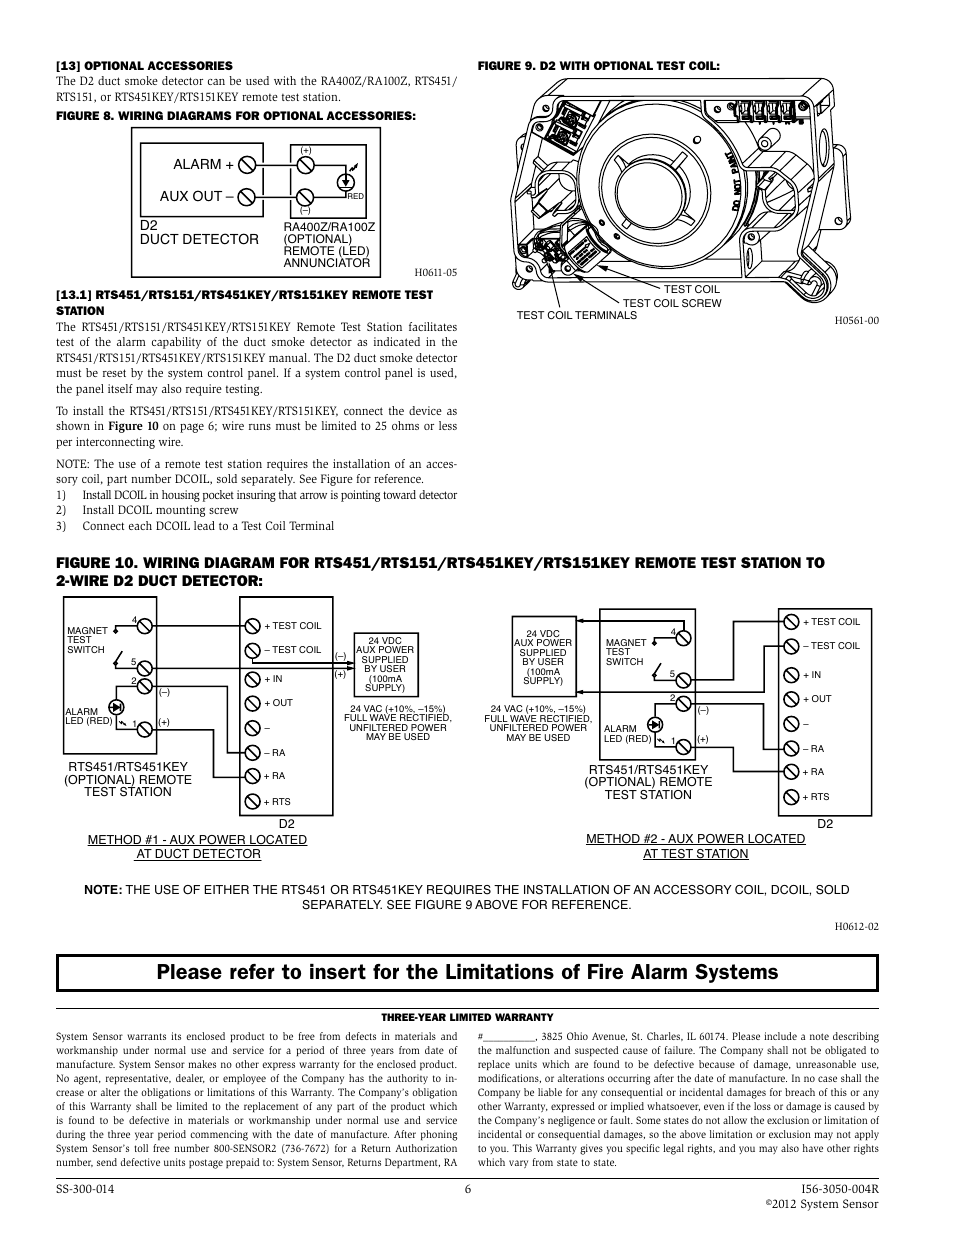 Wiring Diagram Manual Wdm : Rts wiring diagram images